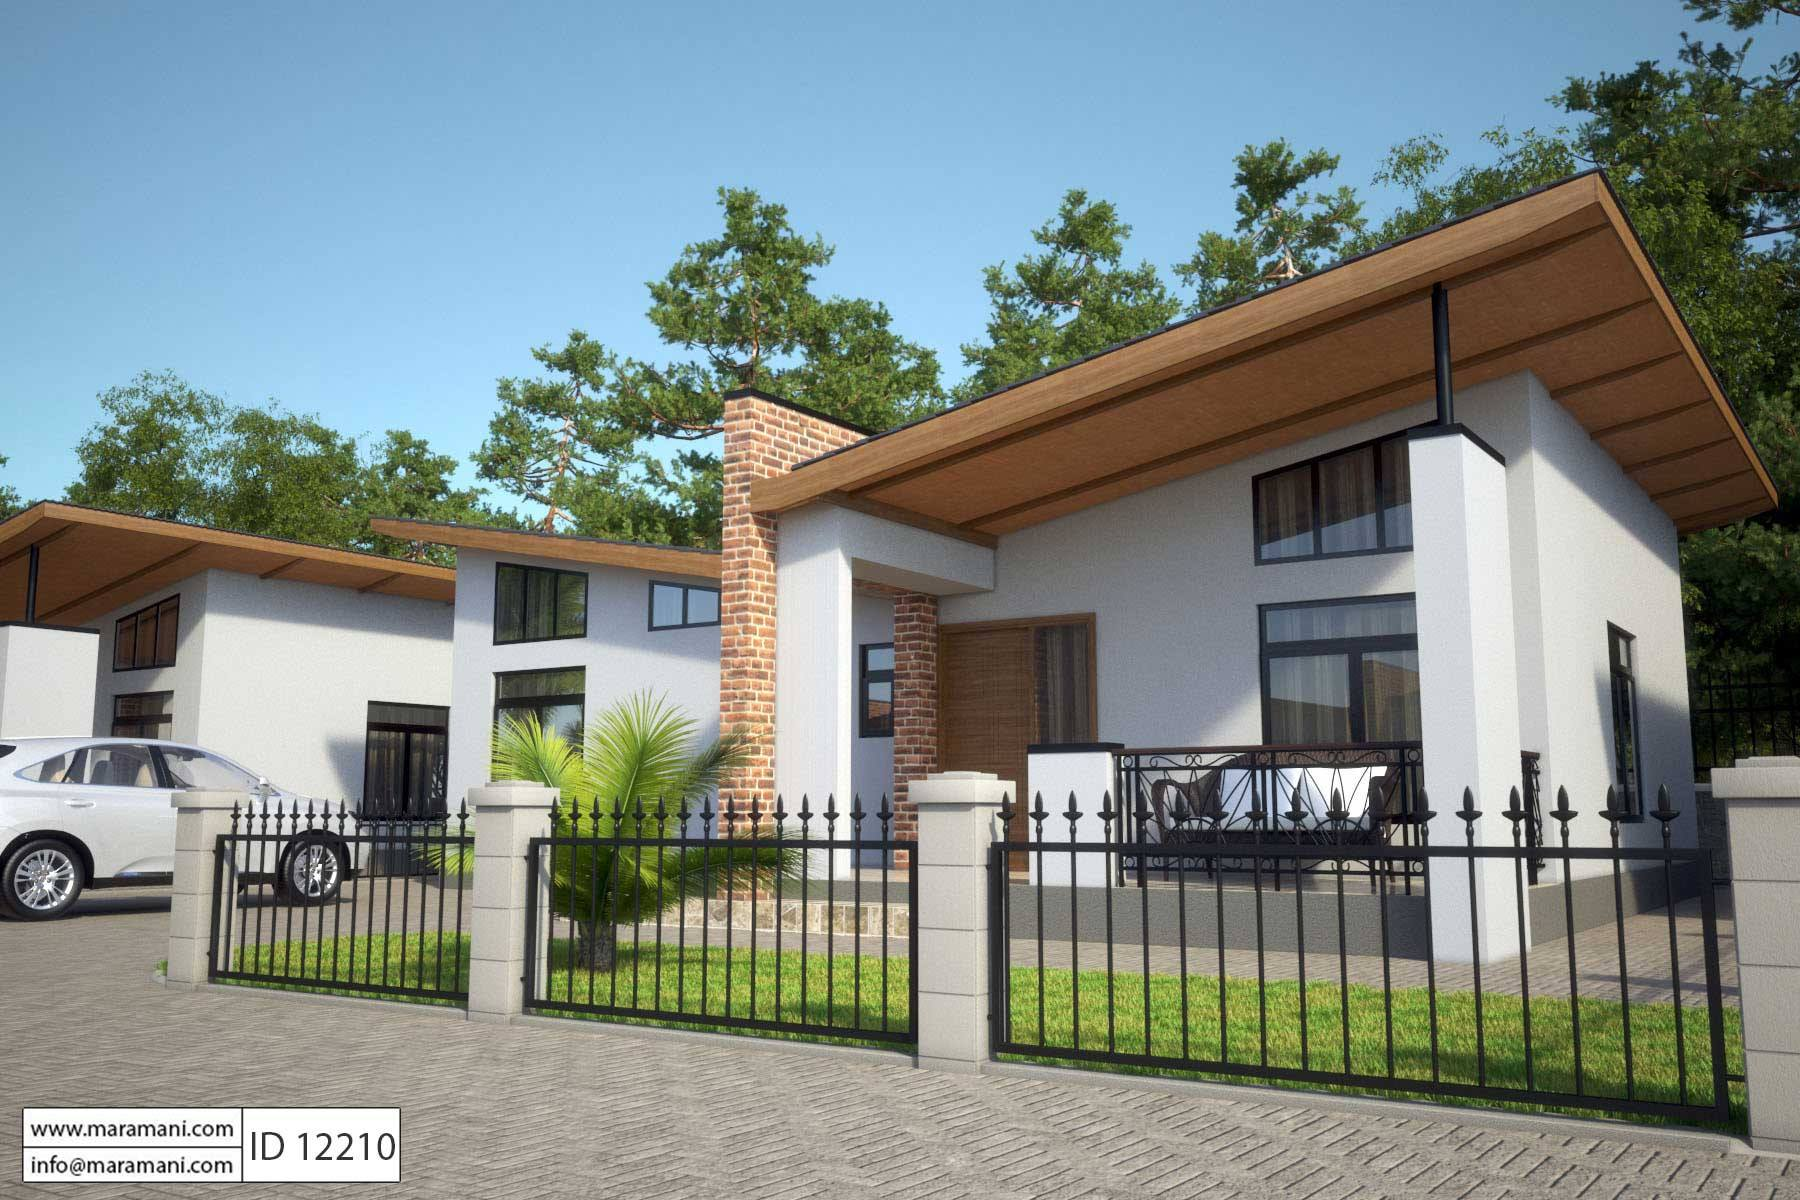 2 bedroom house plan id 12210 house designs by maramani rh maramani com two bedroom house floor plan two bedroom house plans